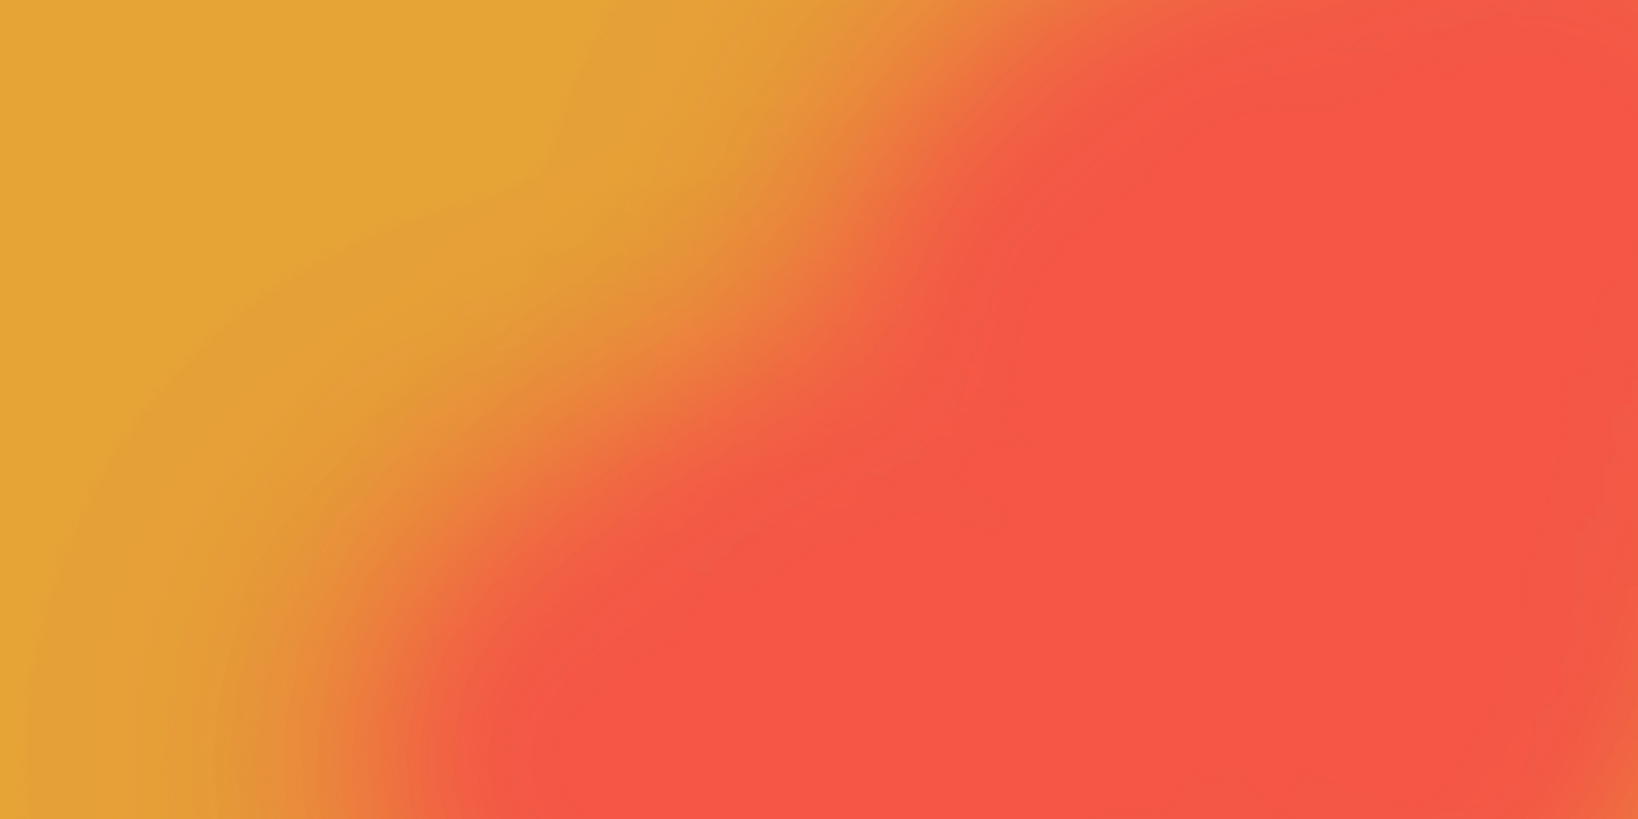 Gradient layer_edited.png